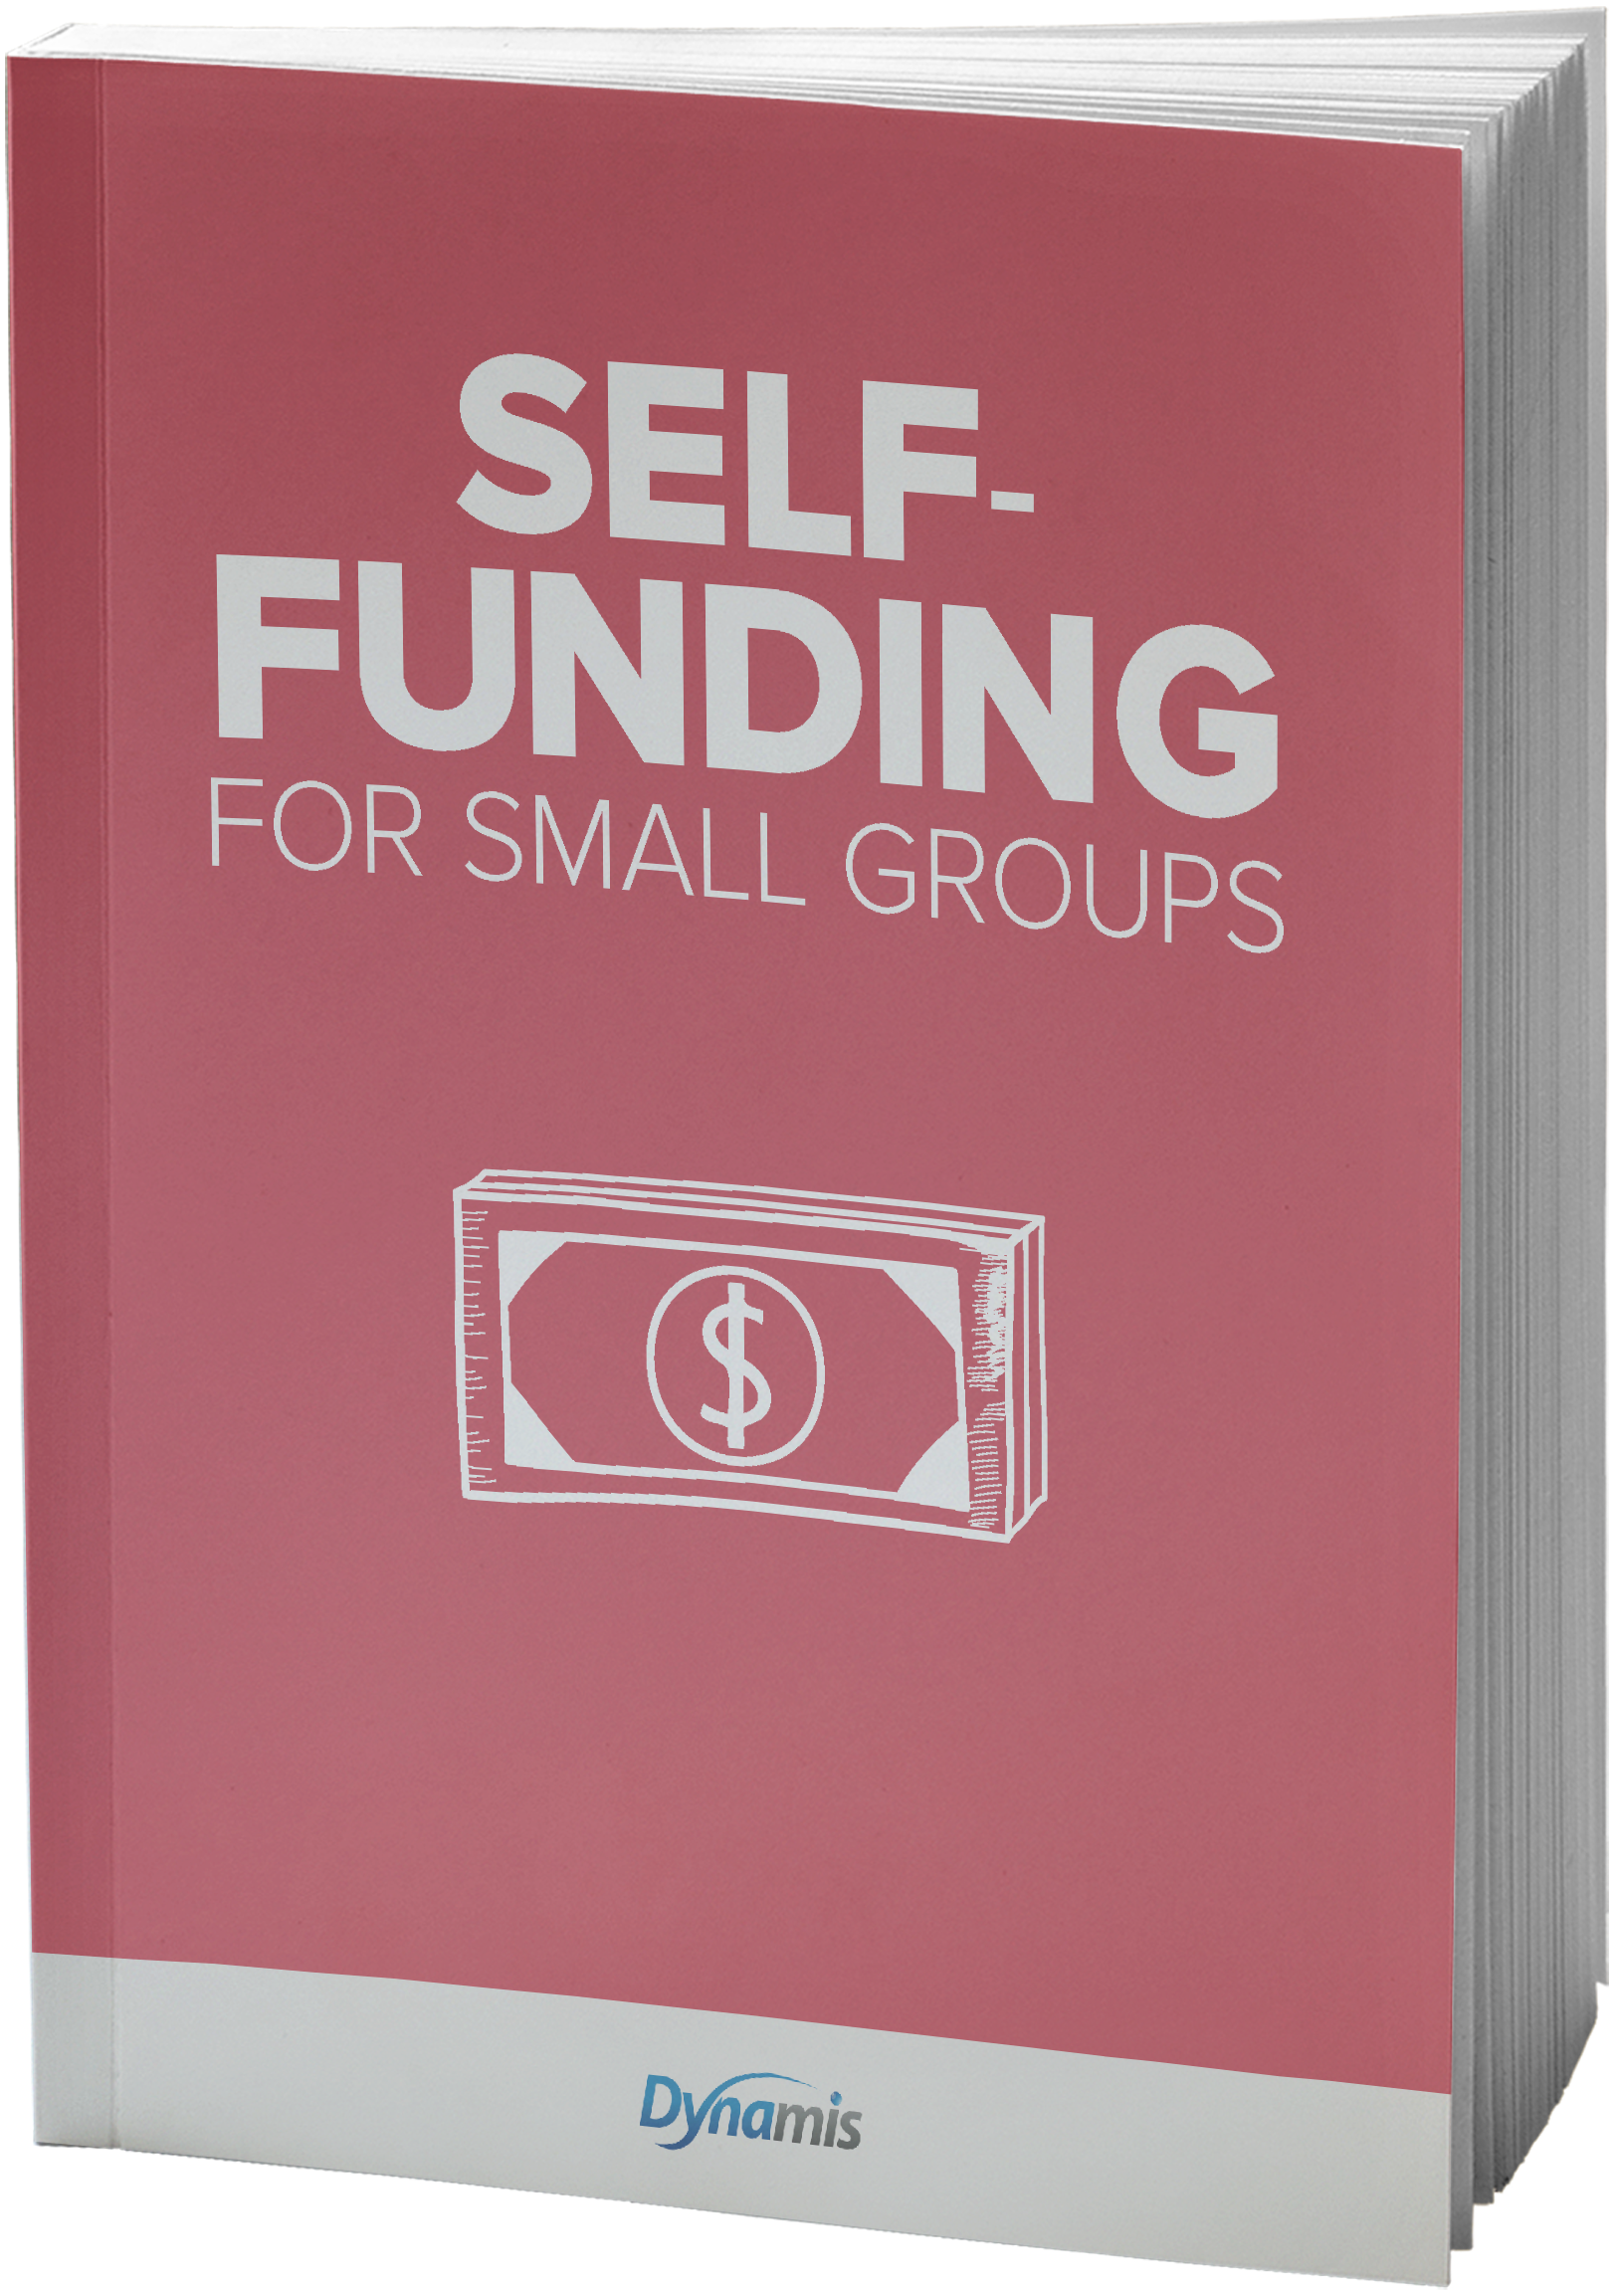 Self funding small groups